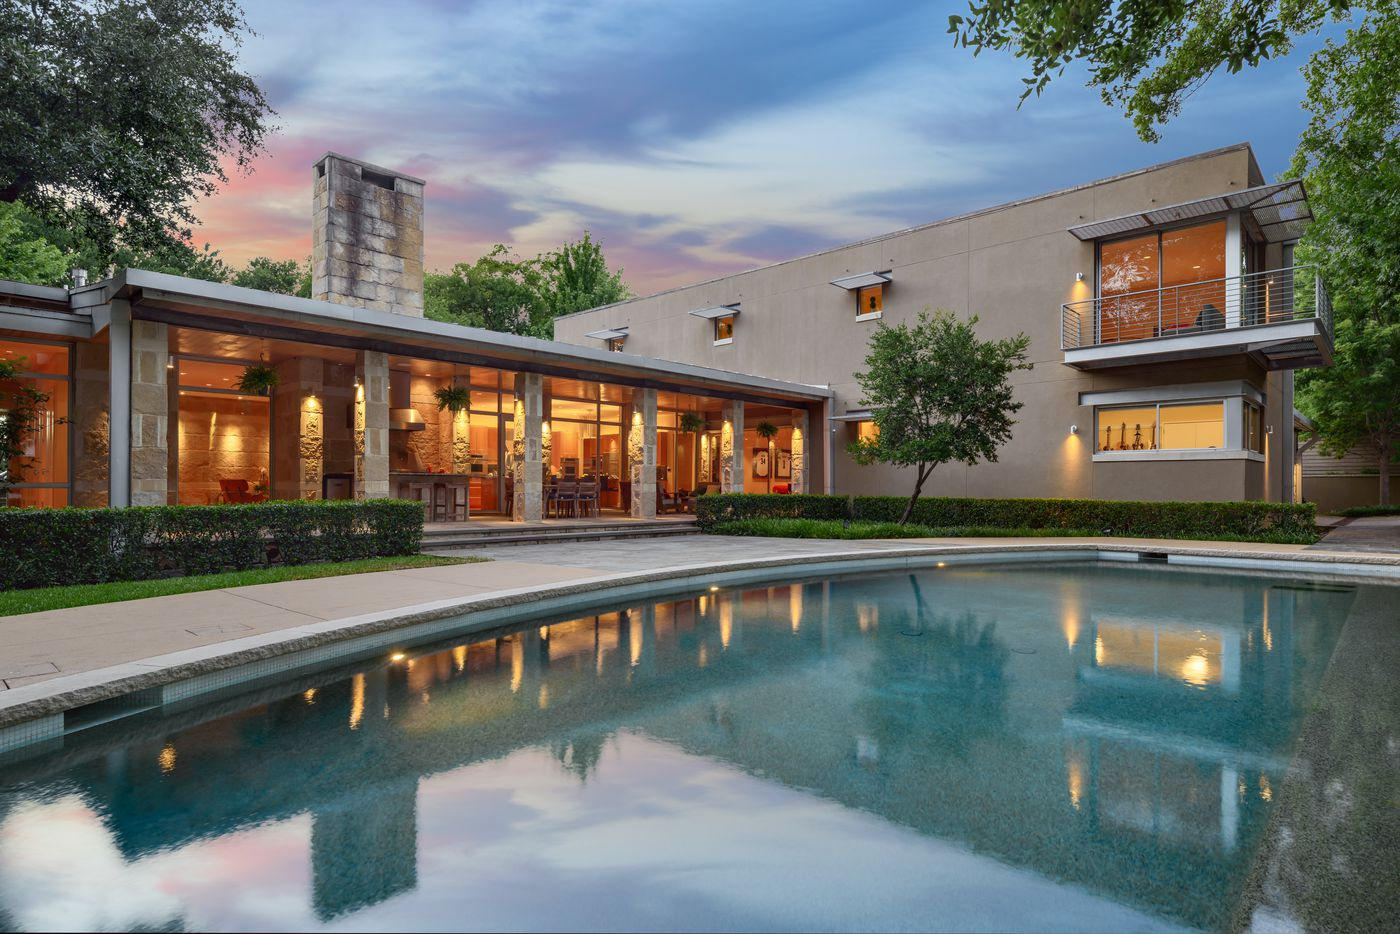 This 6,886-square-foot house at 5006 Shadywood in Dallas' Bluffview neighborhood was built for sustainable living by Ralph Hawkins, former president and CEO of architecture firm HKS Inc.